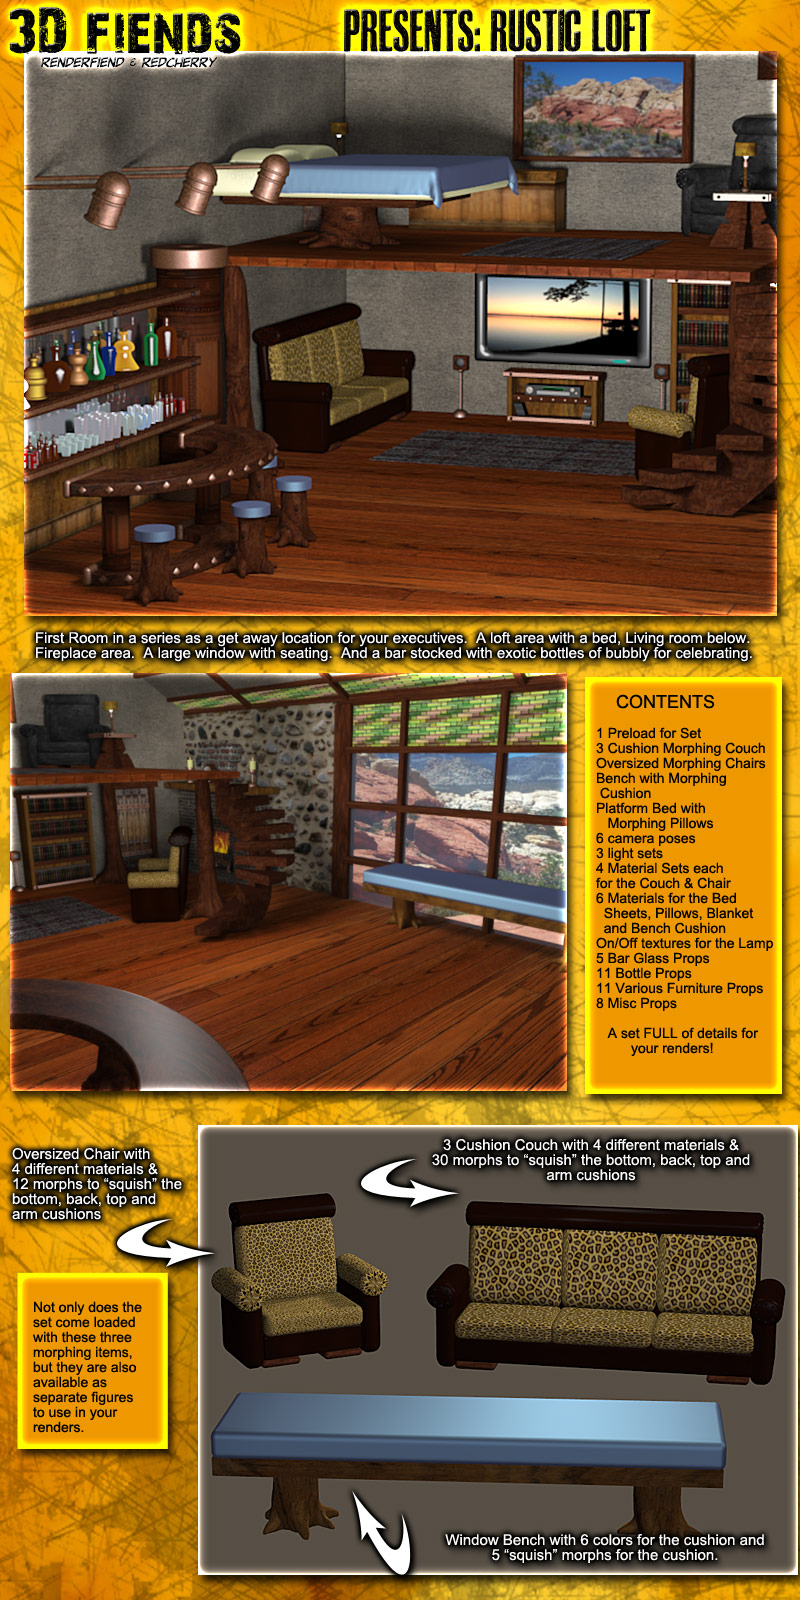 3D Fiends' Rustic Loft Set